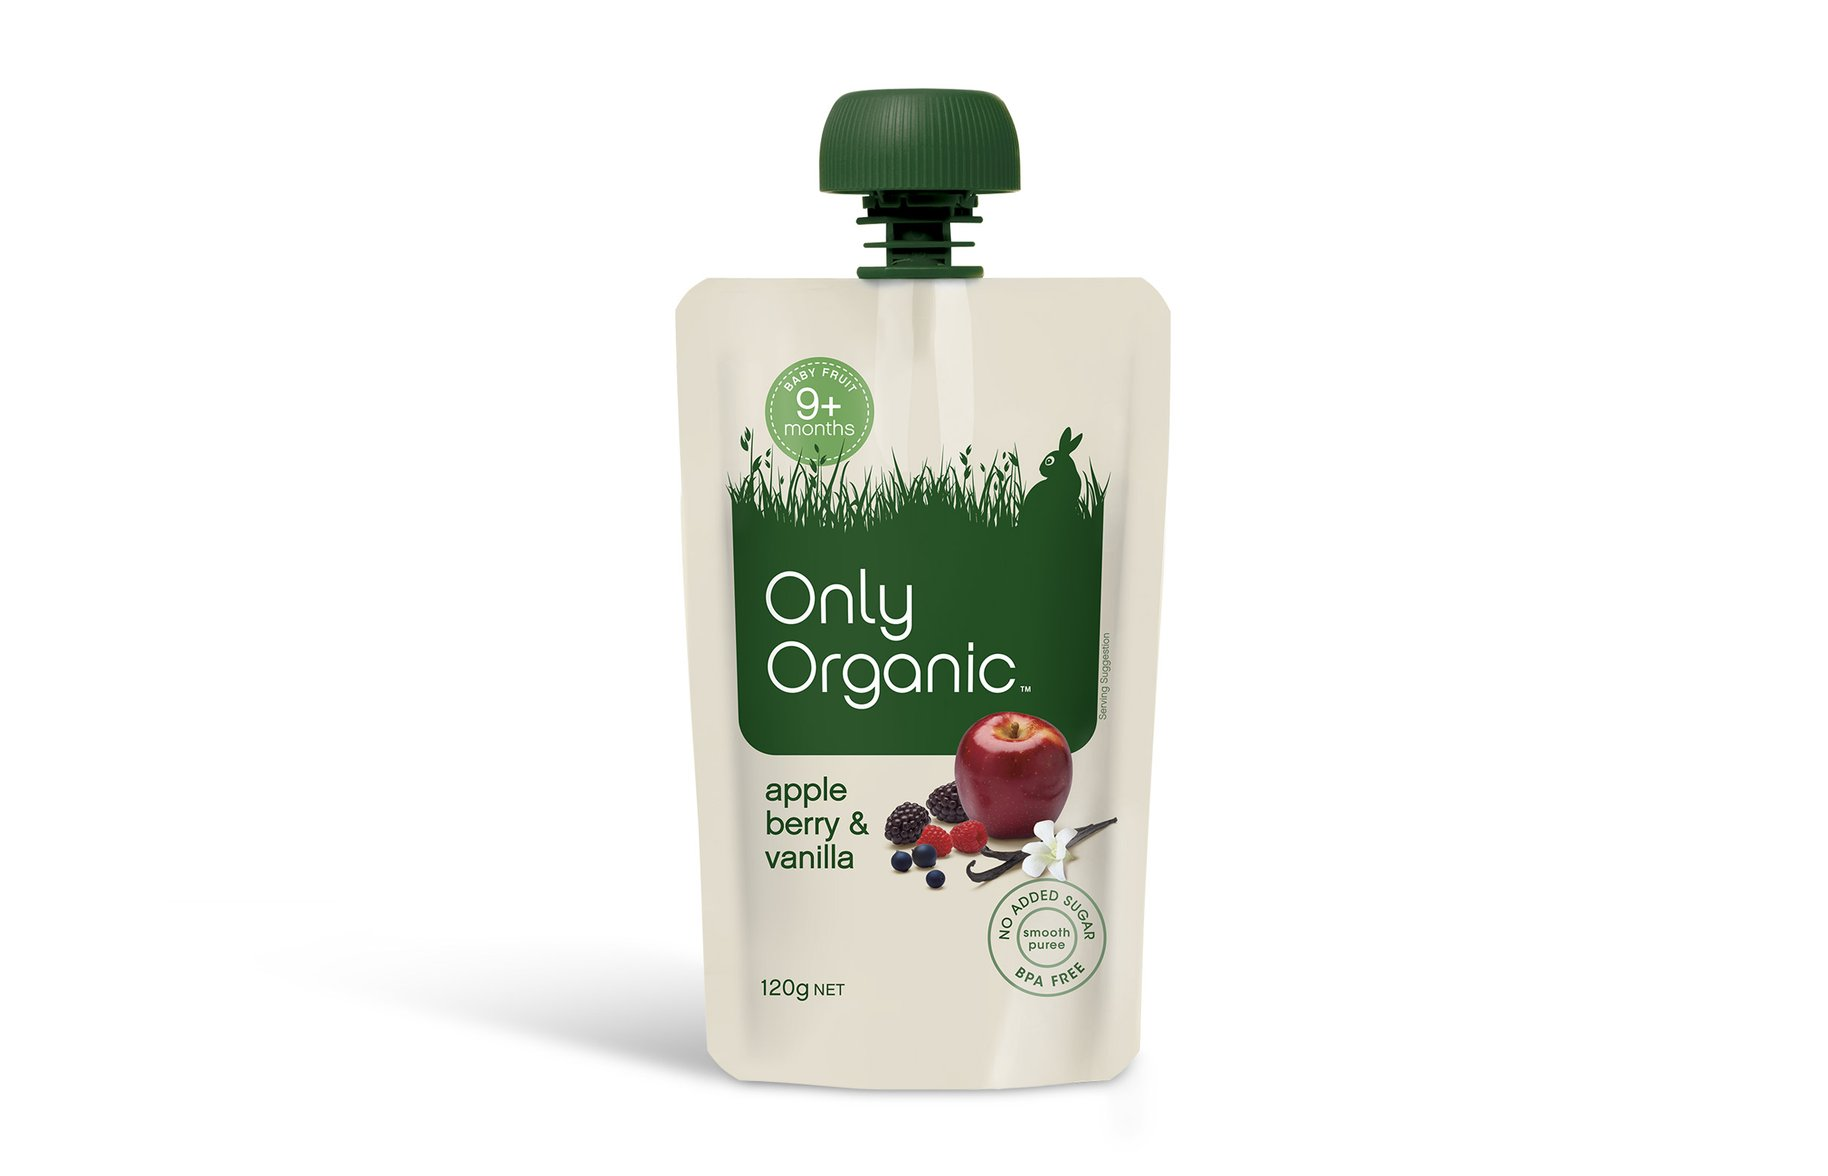 Only Organic apple berry and vanilla baby food packaging